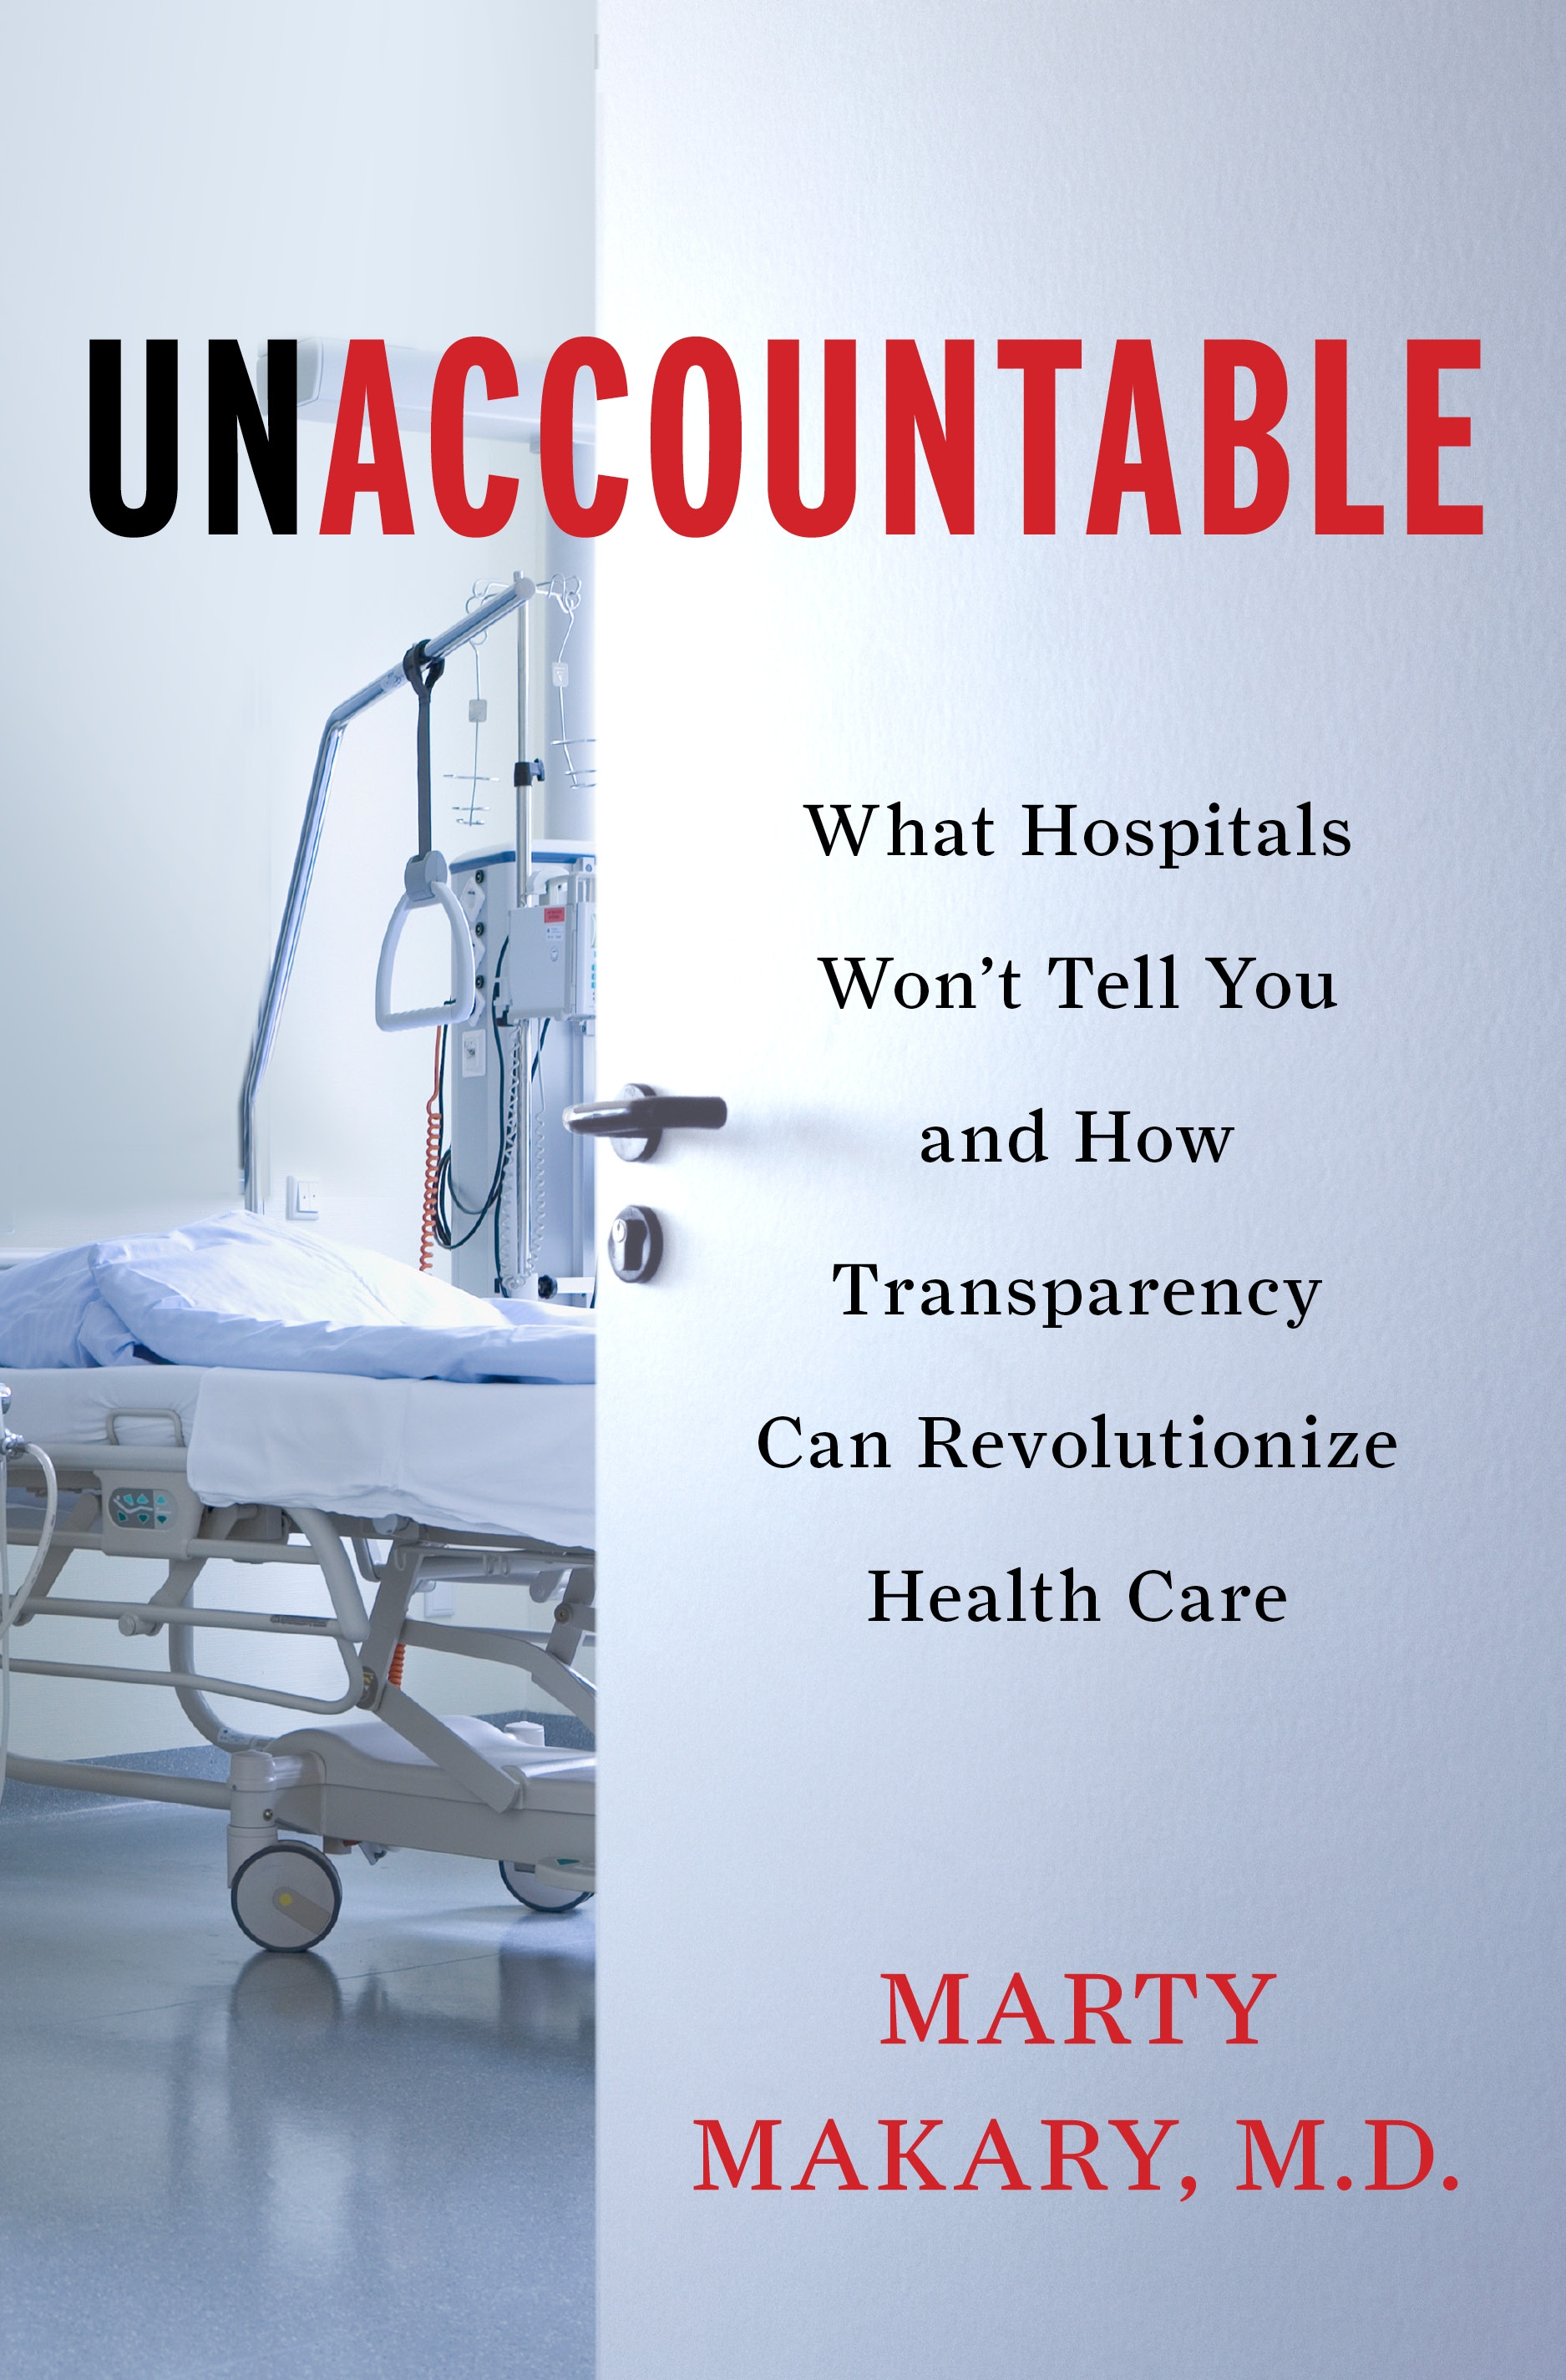 Unaccountable By: Martin Makary